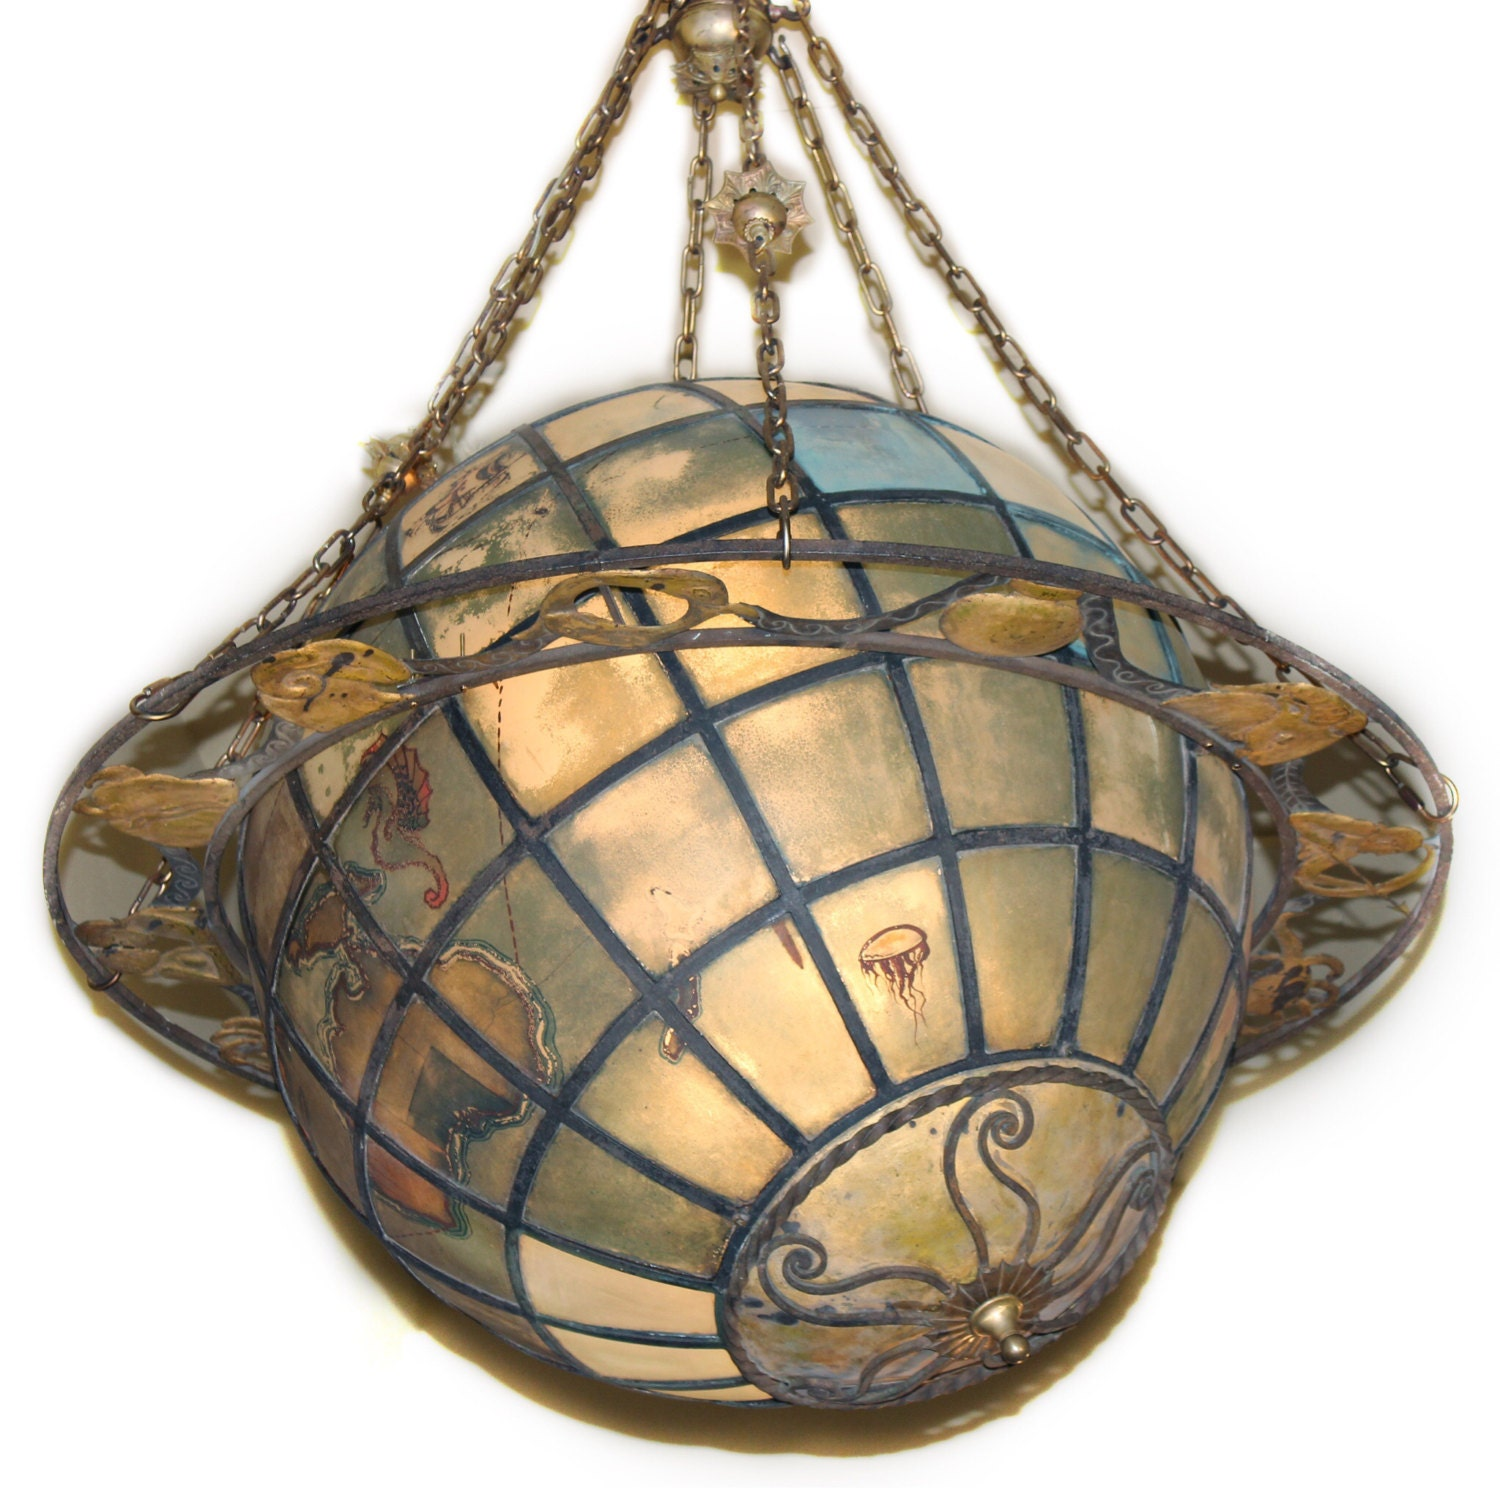 A4444 Vintage Historic World Globe Chandelier with Zodiac Ring